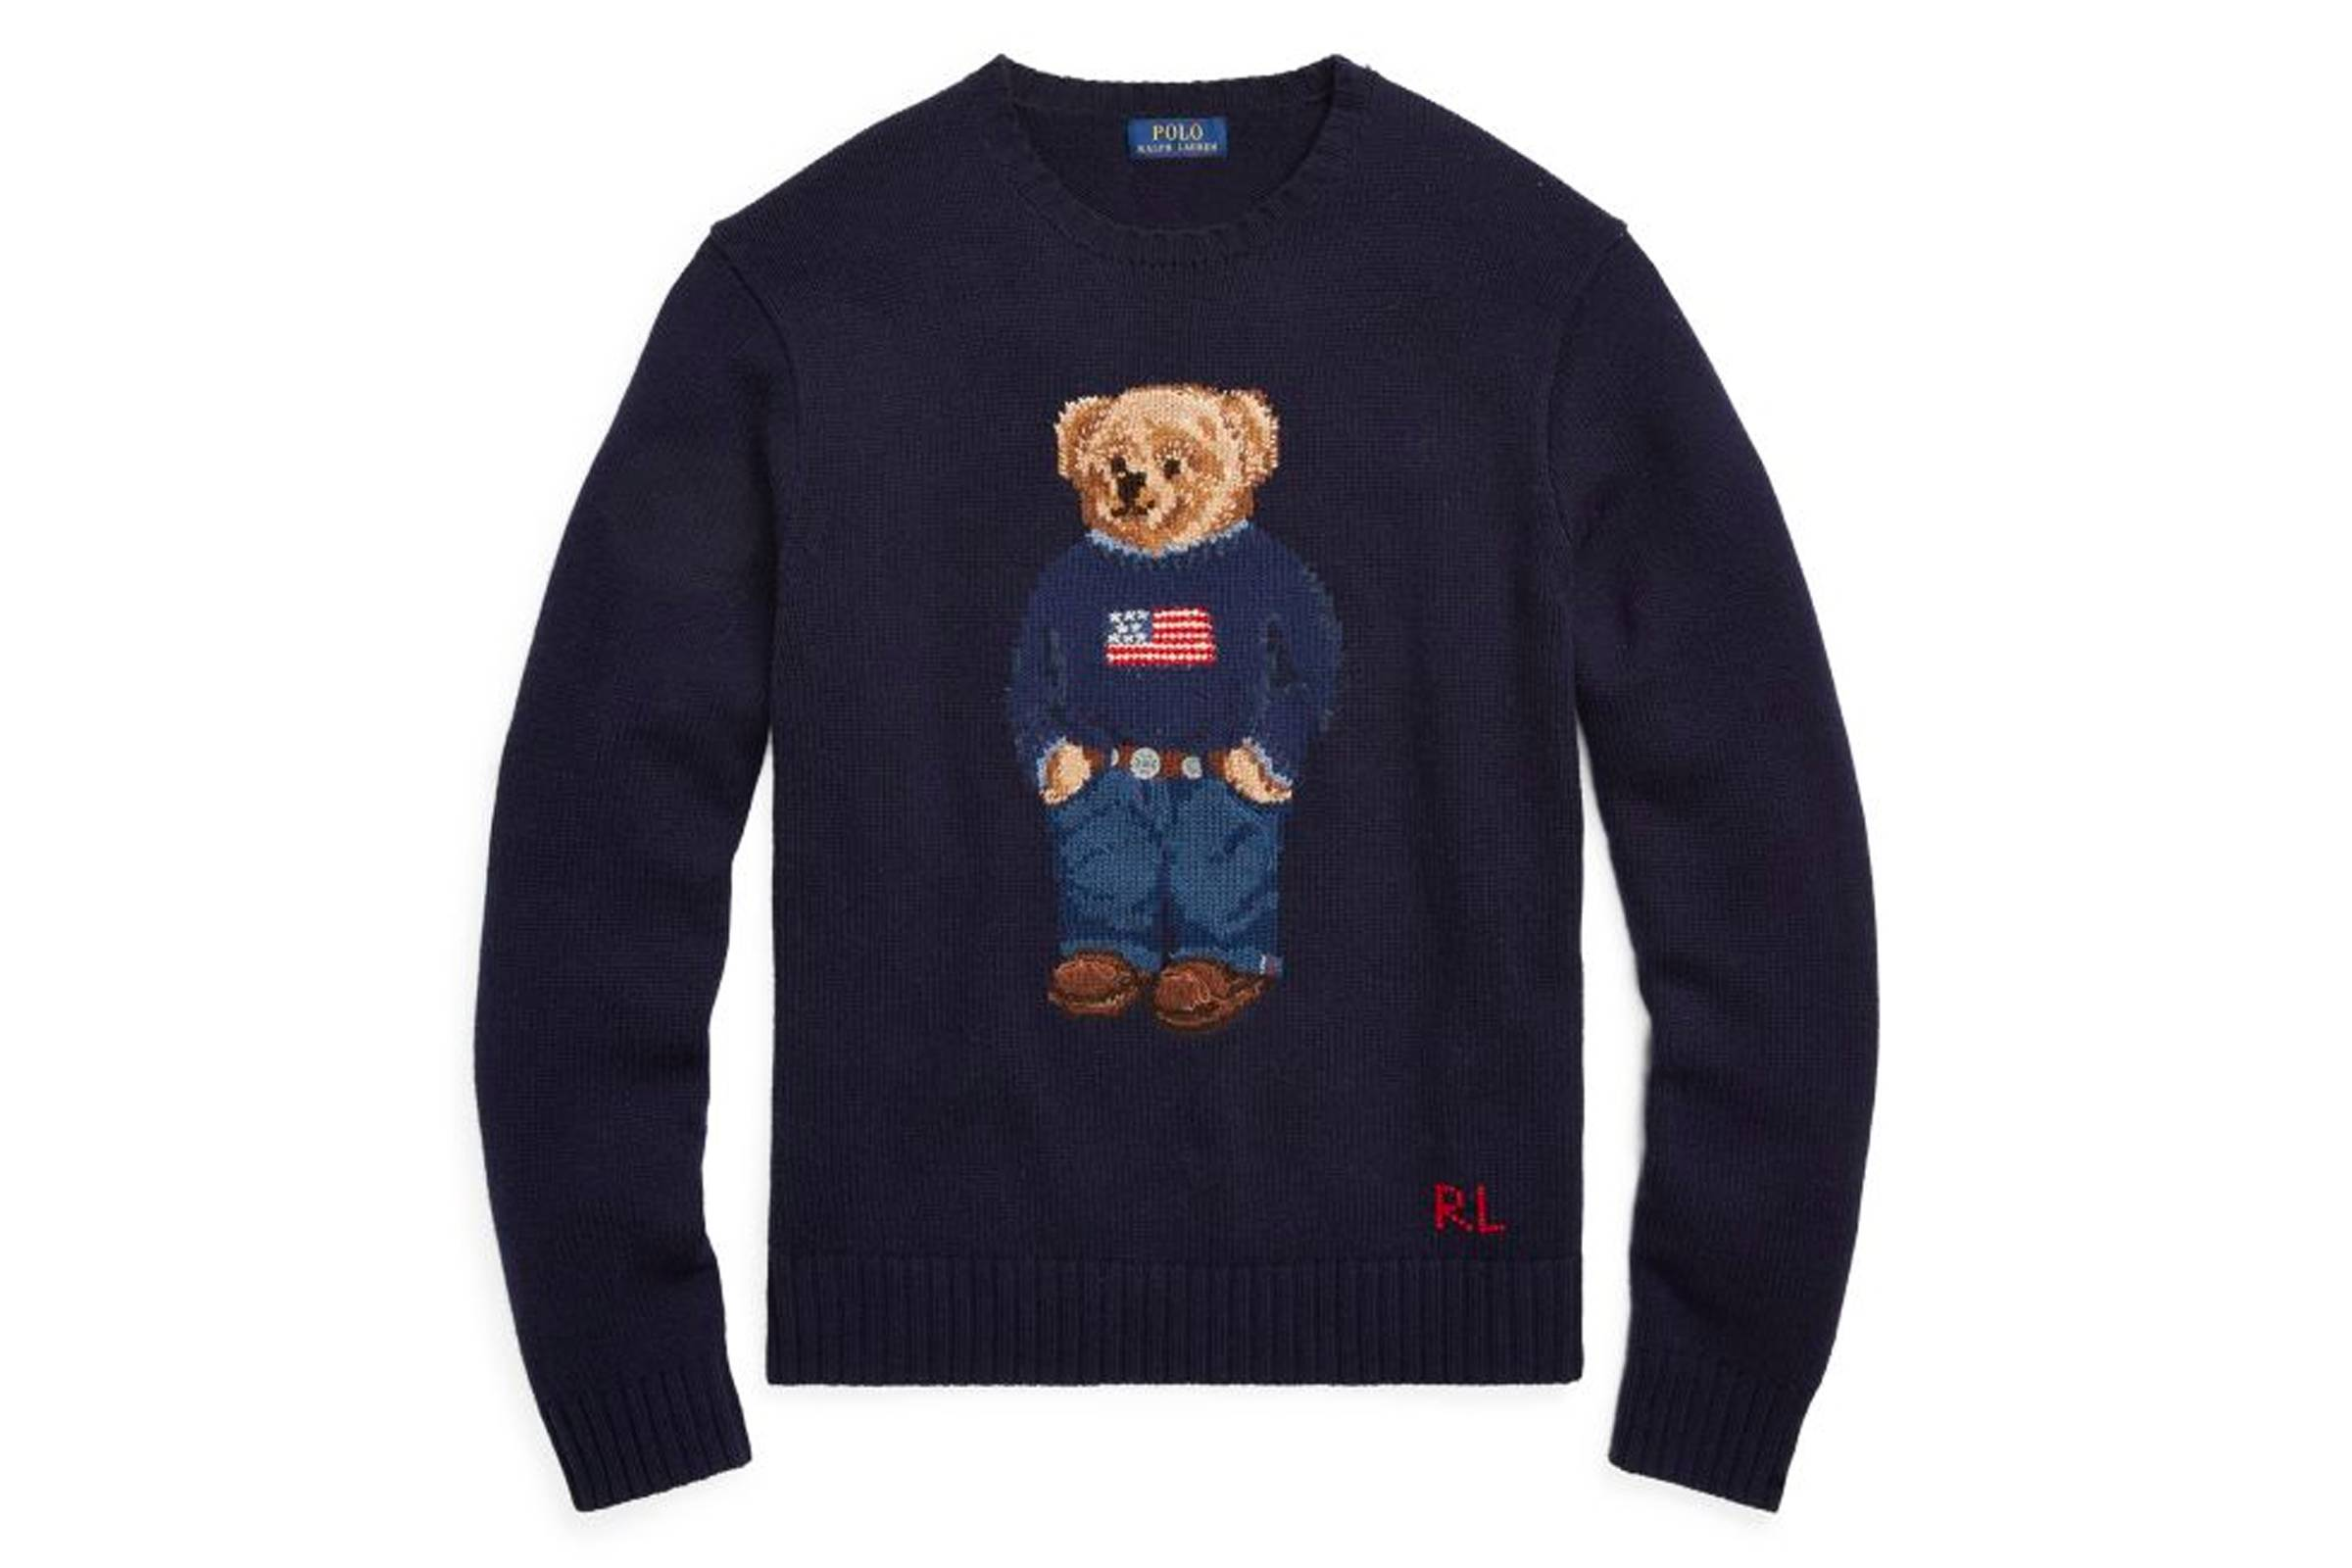 08a5da18041ea An Abridged History of The Polo Bear - Ralph Lauren Polo Bear ...